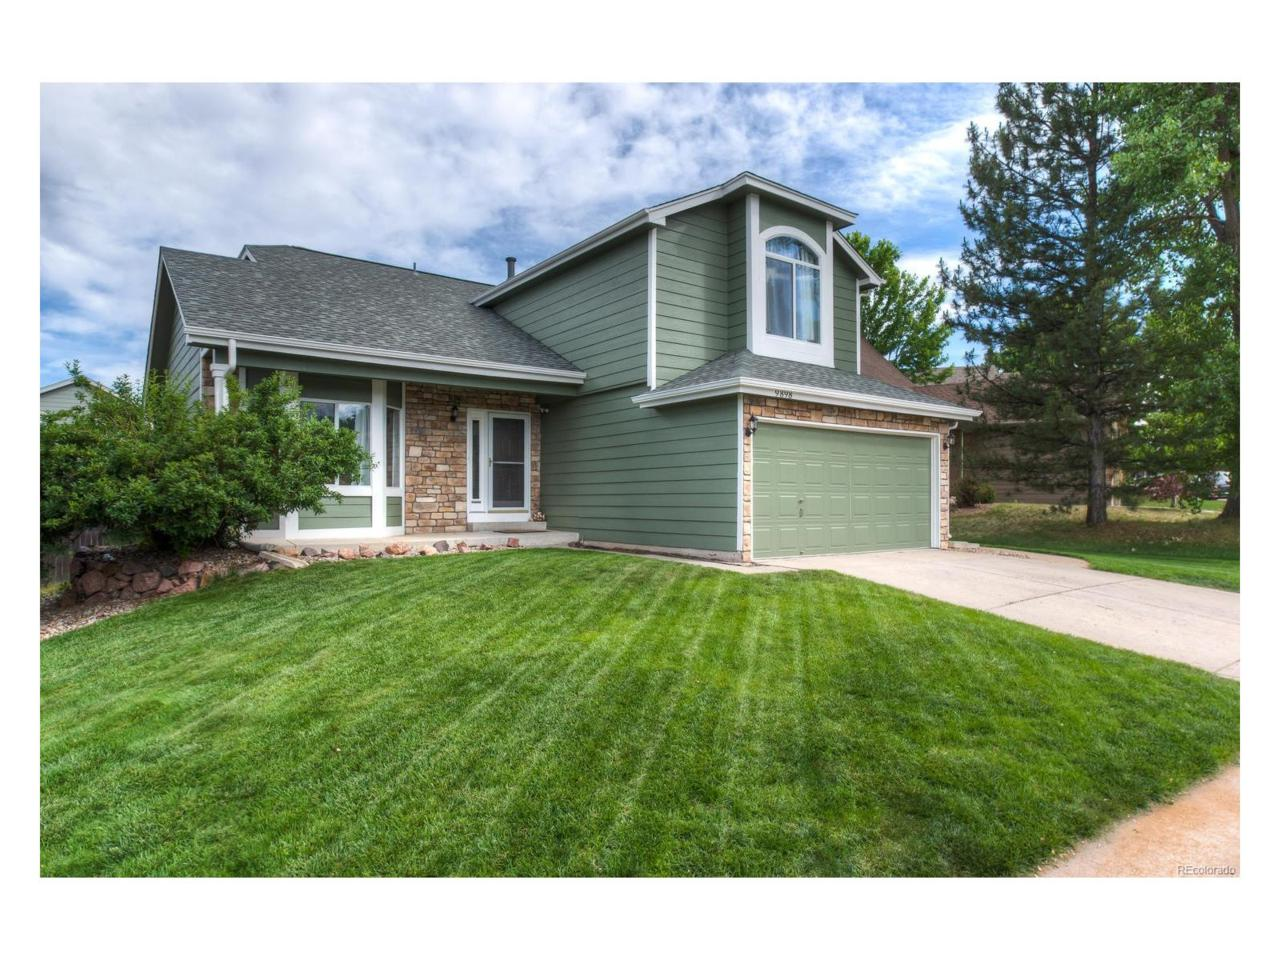 9898 Foxhill Circle, Highlands Ranch, CO 80129 (MLS #4485916) :: 8z Real Estate